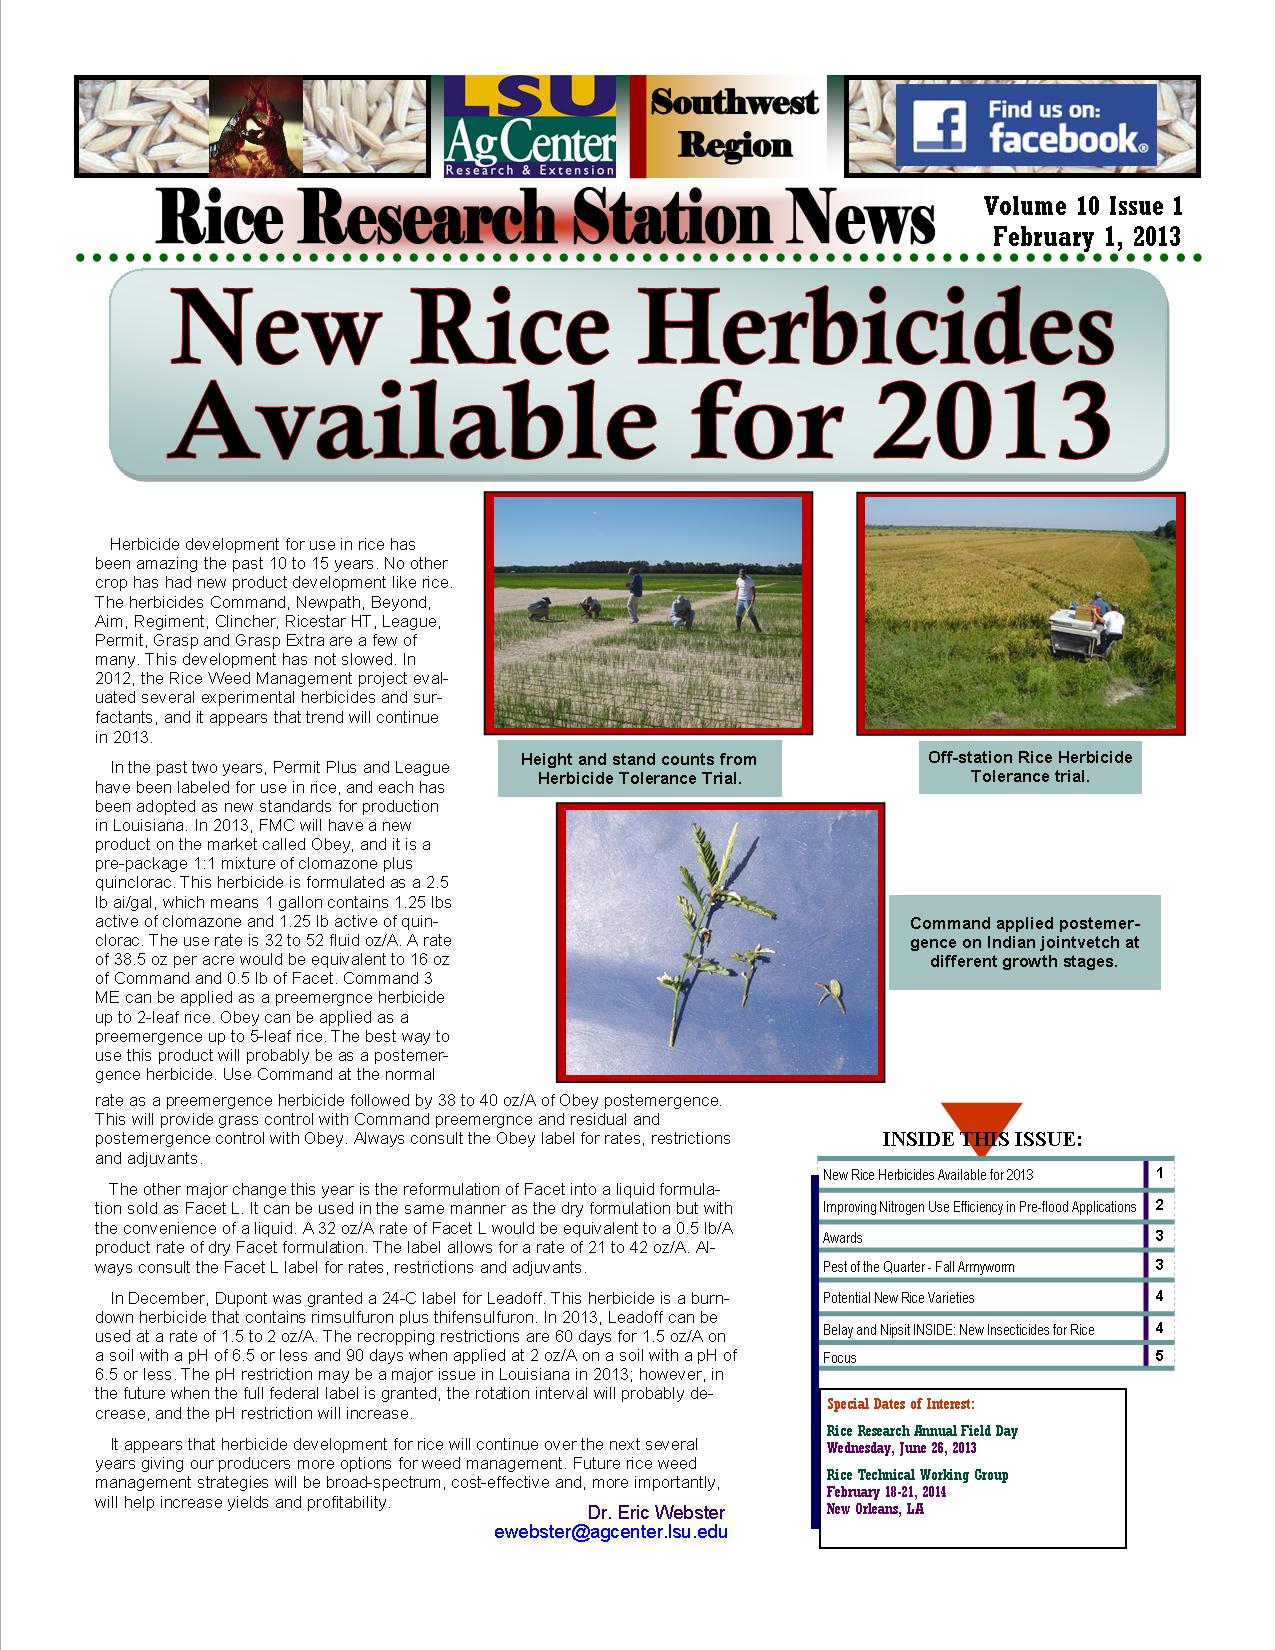 Rice Research Station February Newsletter